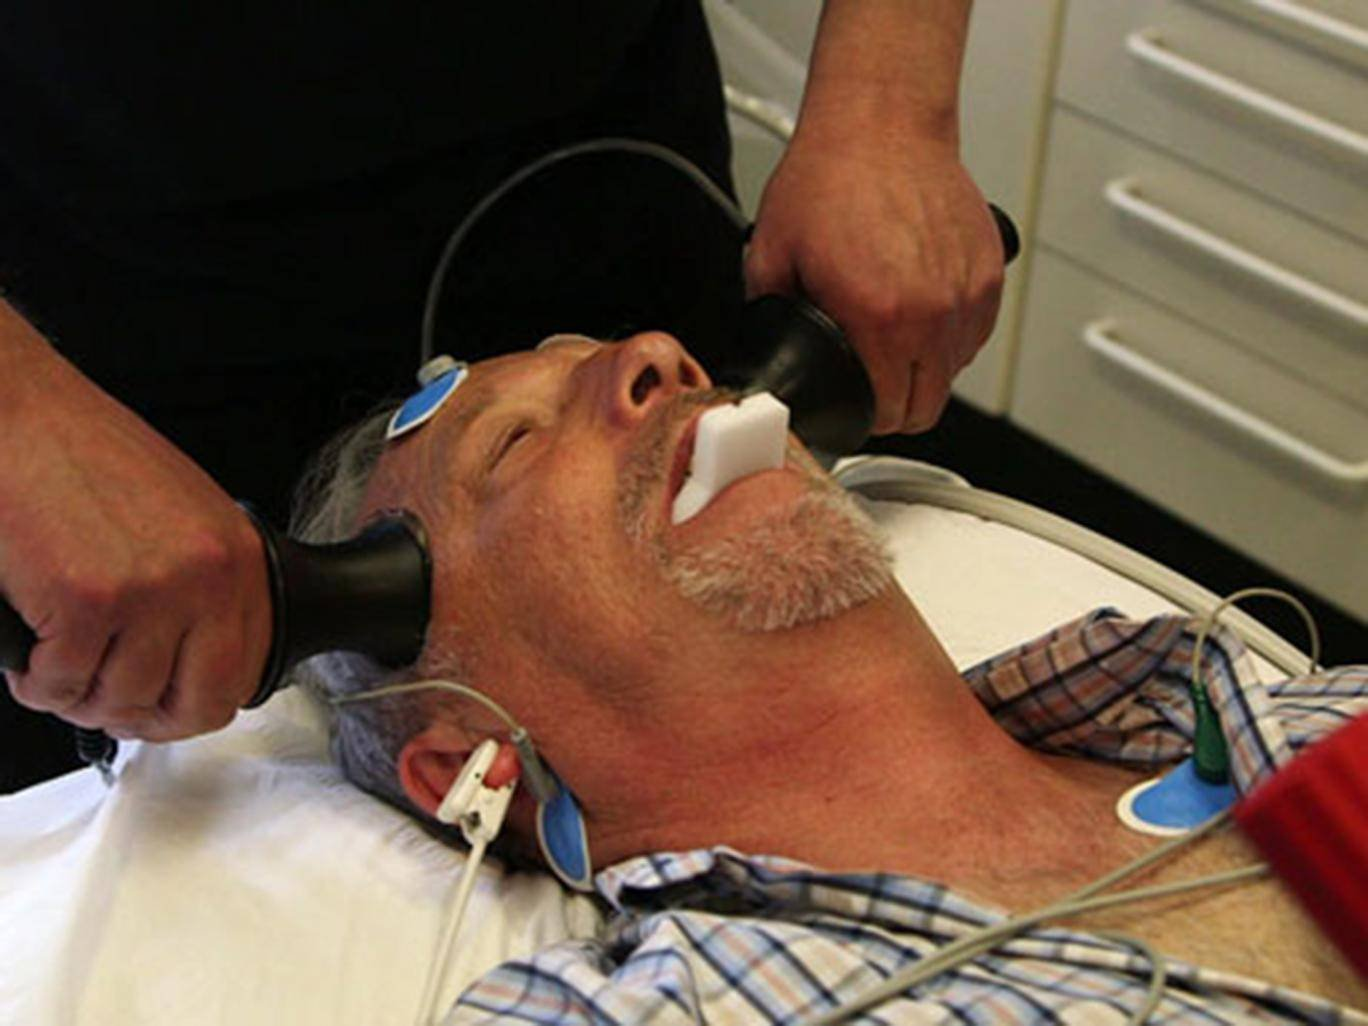 Why is electric shock treatment still given in 2018?